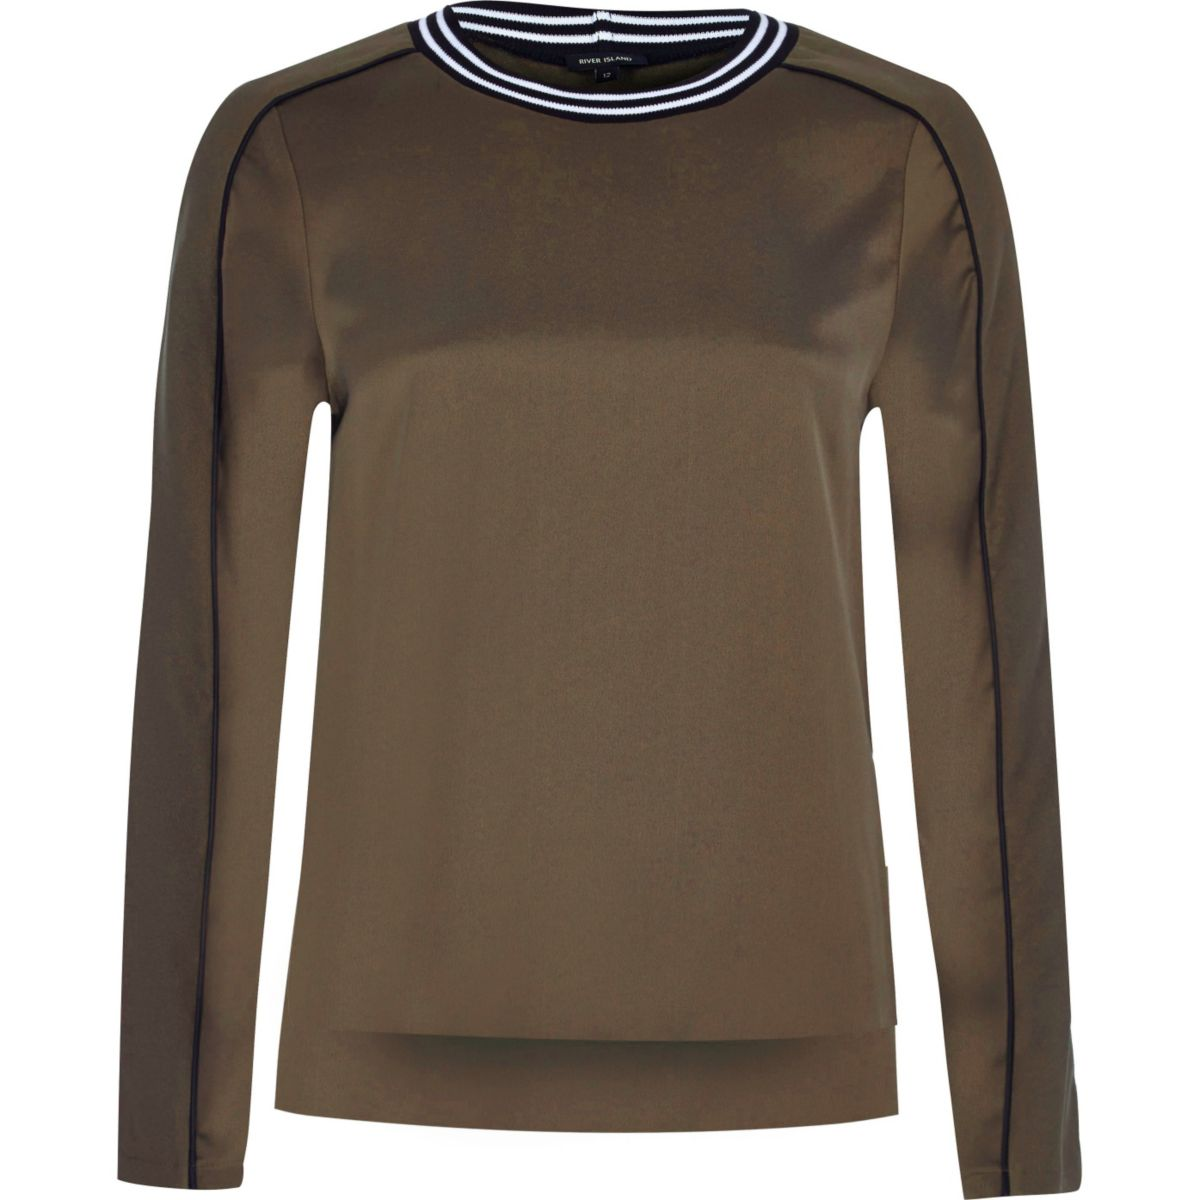 Khaki tipped sweatshirt